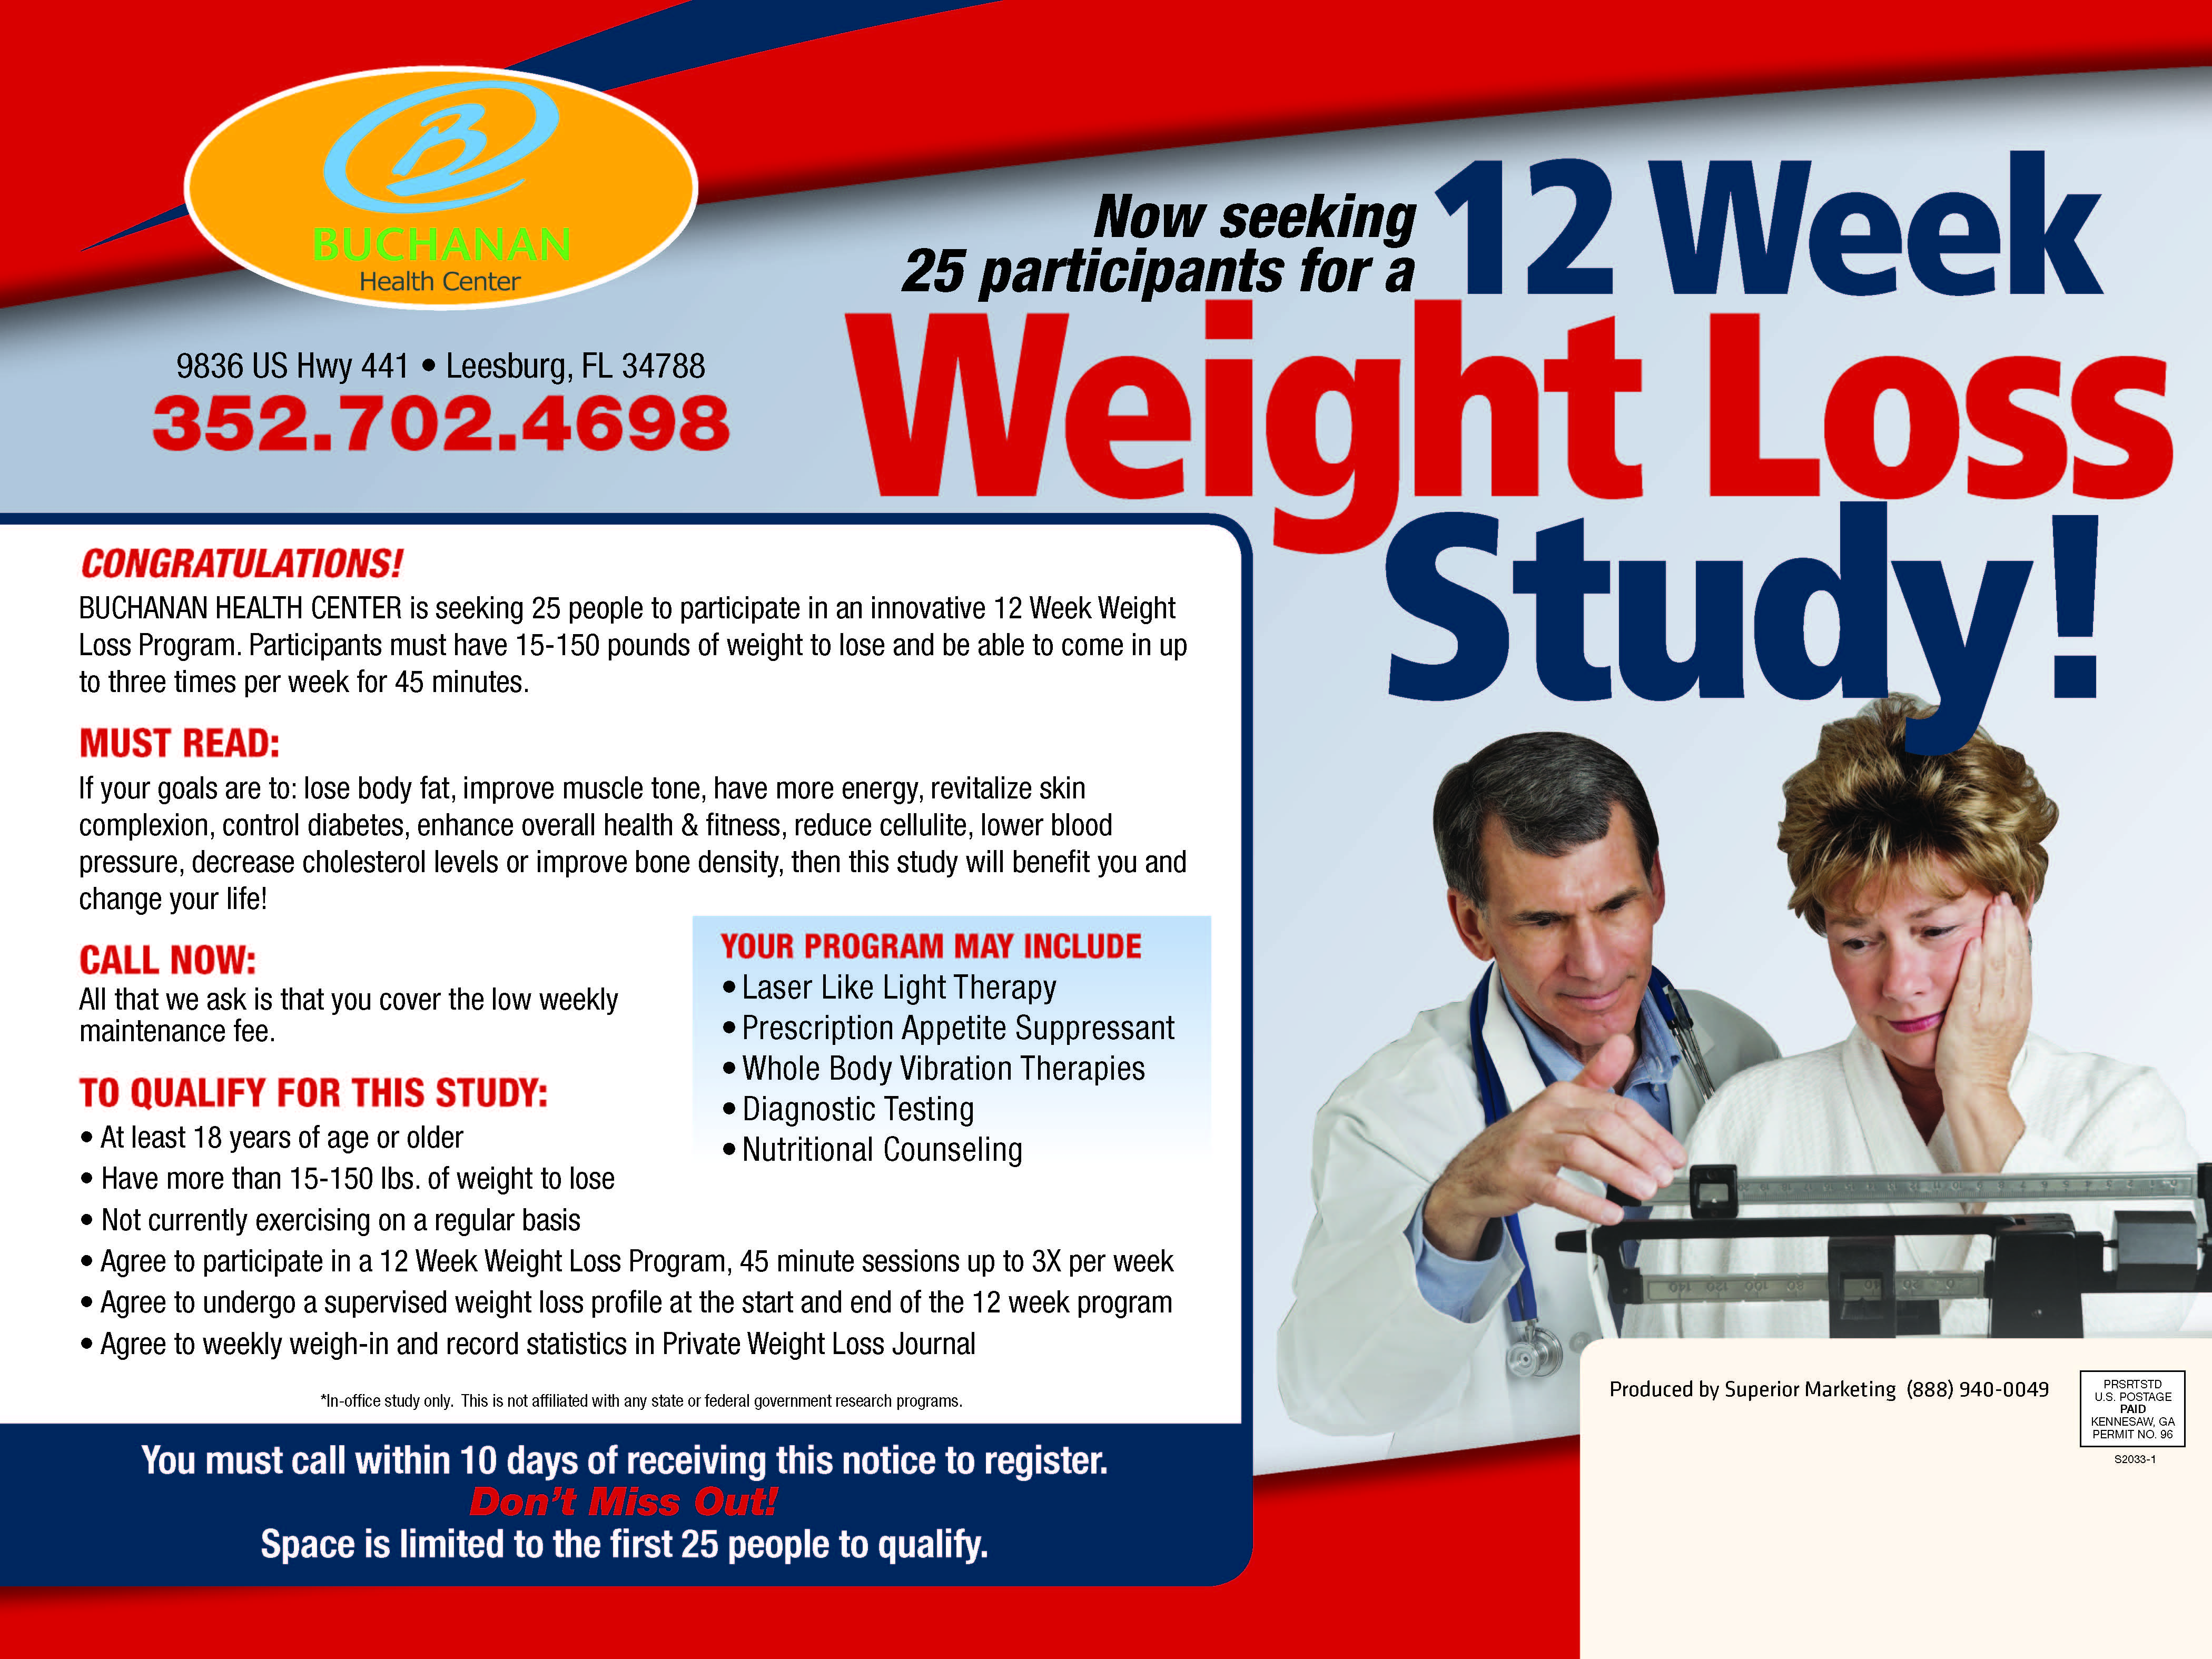 Weight Loss Program Brochure for Buchanan Health Center in Leesburg